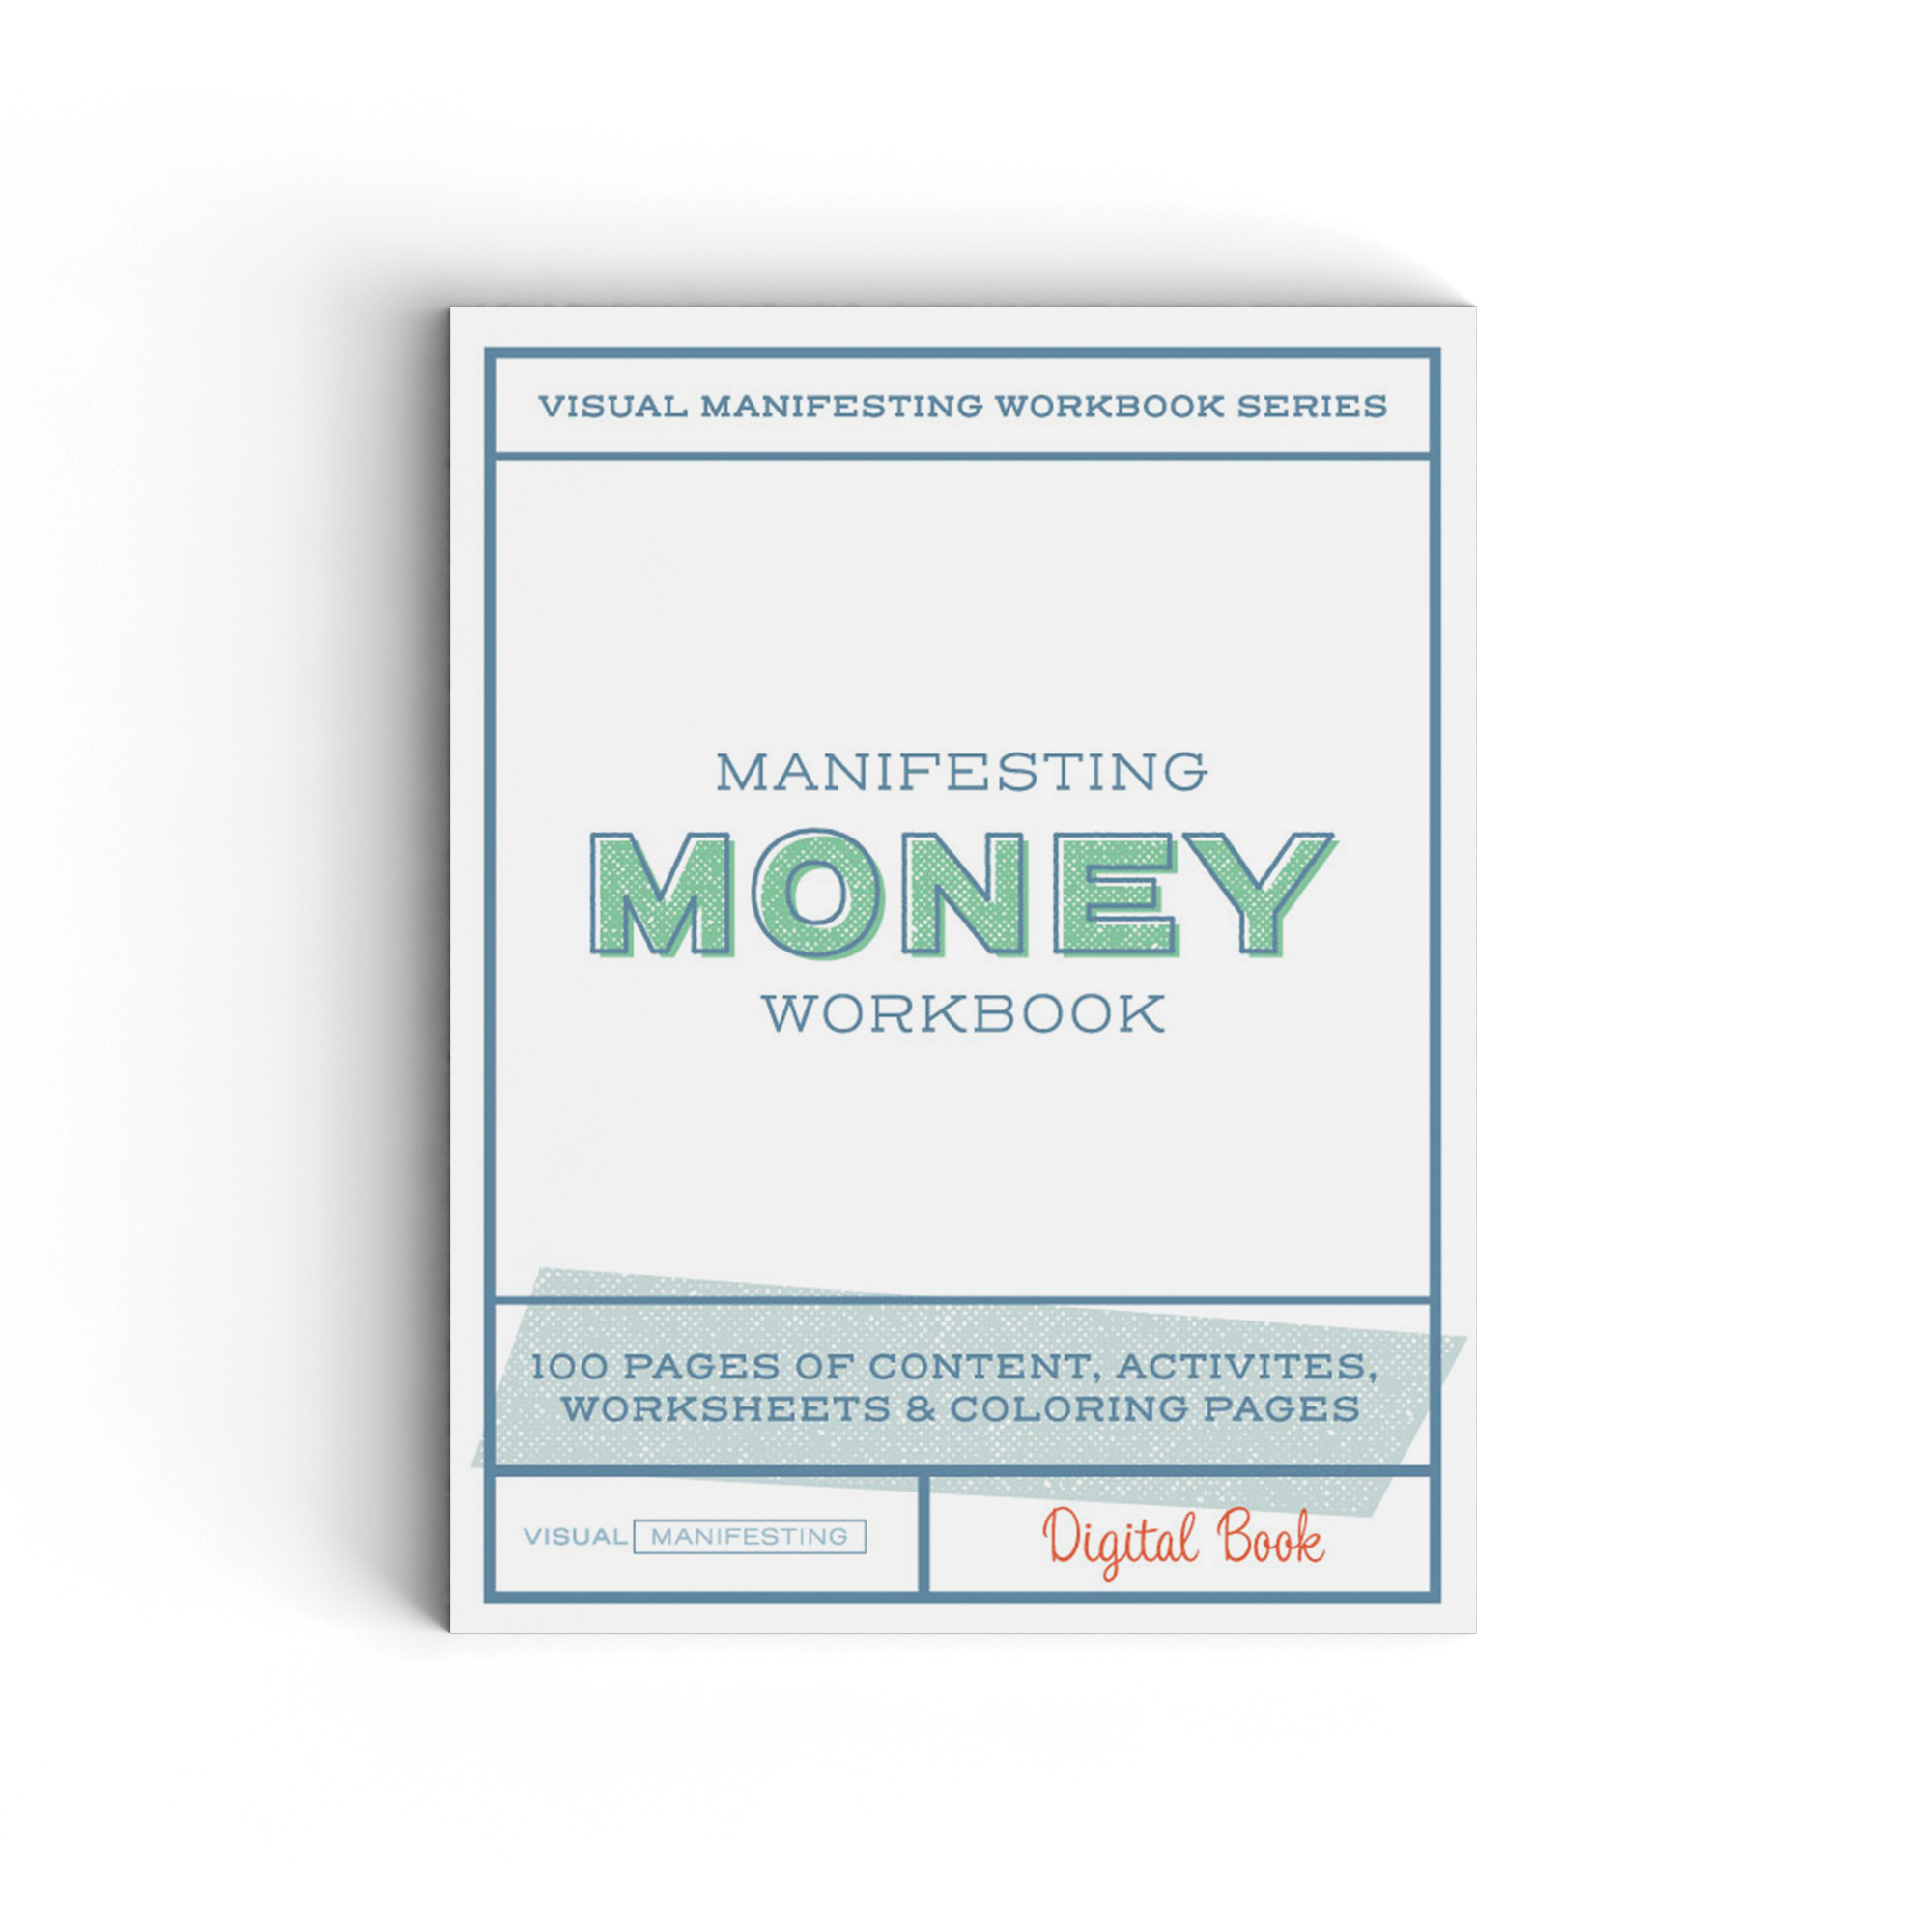 Manifesting Money Workbook - 100 Pages of Content, Activities, Worksheets and Color Pages designed to align you with your wealth & abundance.